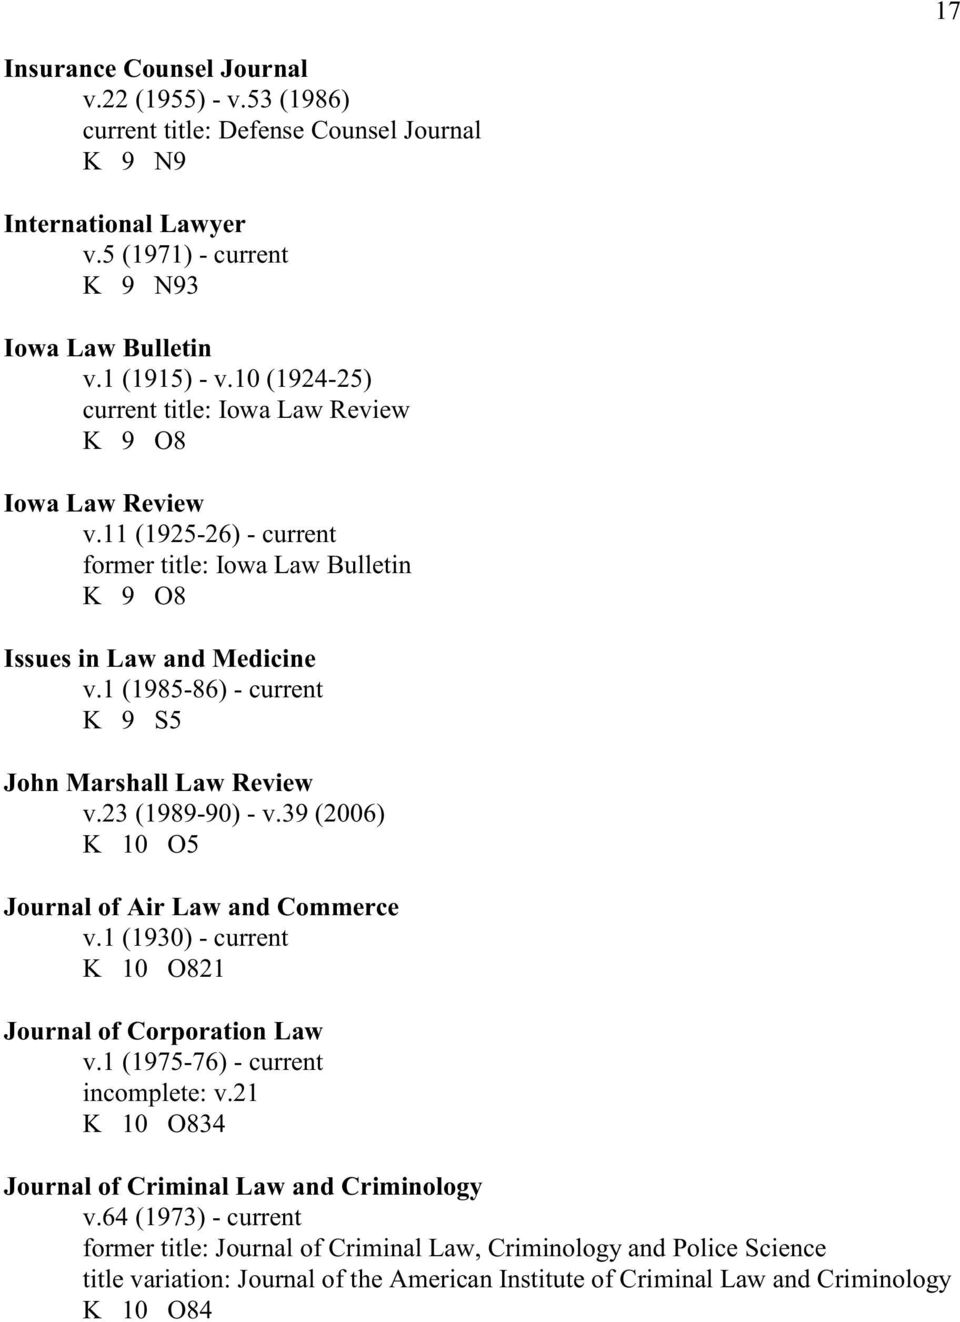 1 (1985-86) - current K 9 S5 John Marshall Law Review v.23 (1989-90) - v.39 (2006) K 10 O5 Journal of Air Law and Commerce v.1 (1930) - current K 10 O821 Journal of Corporation Law v.